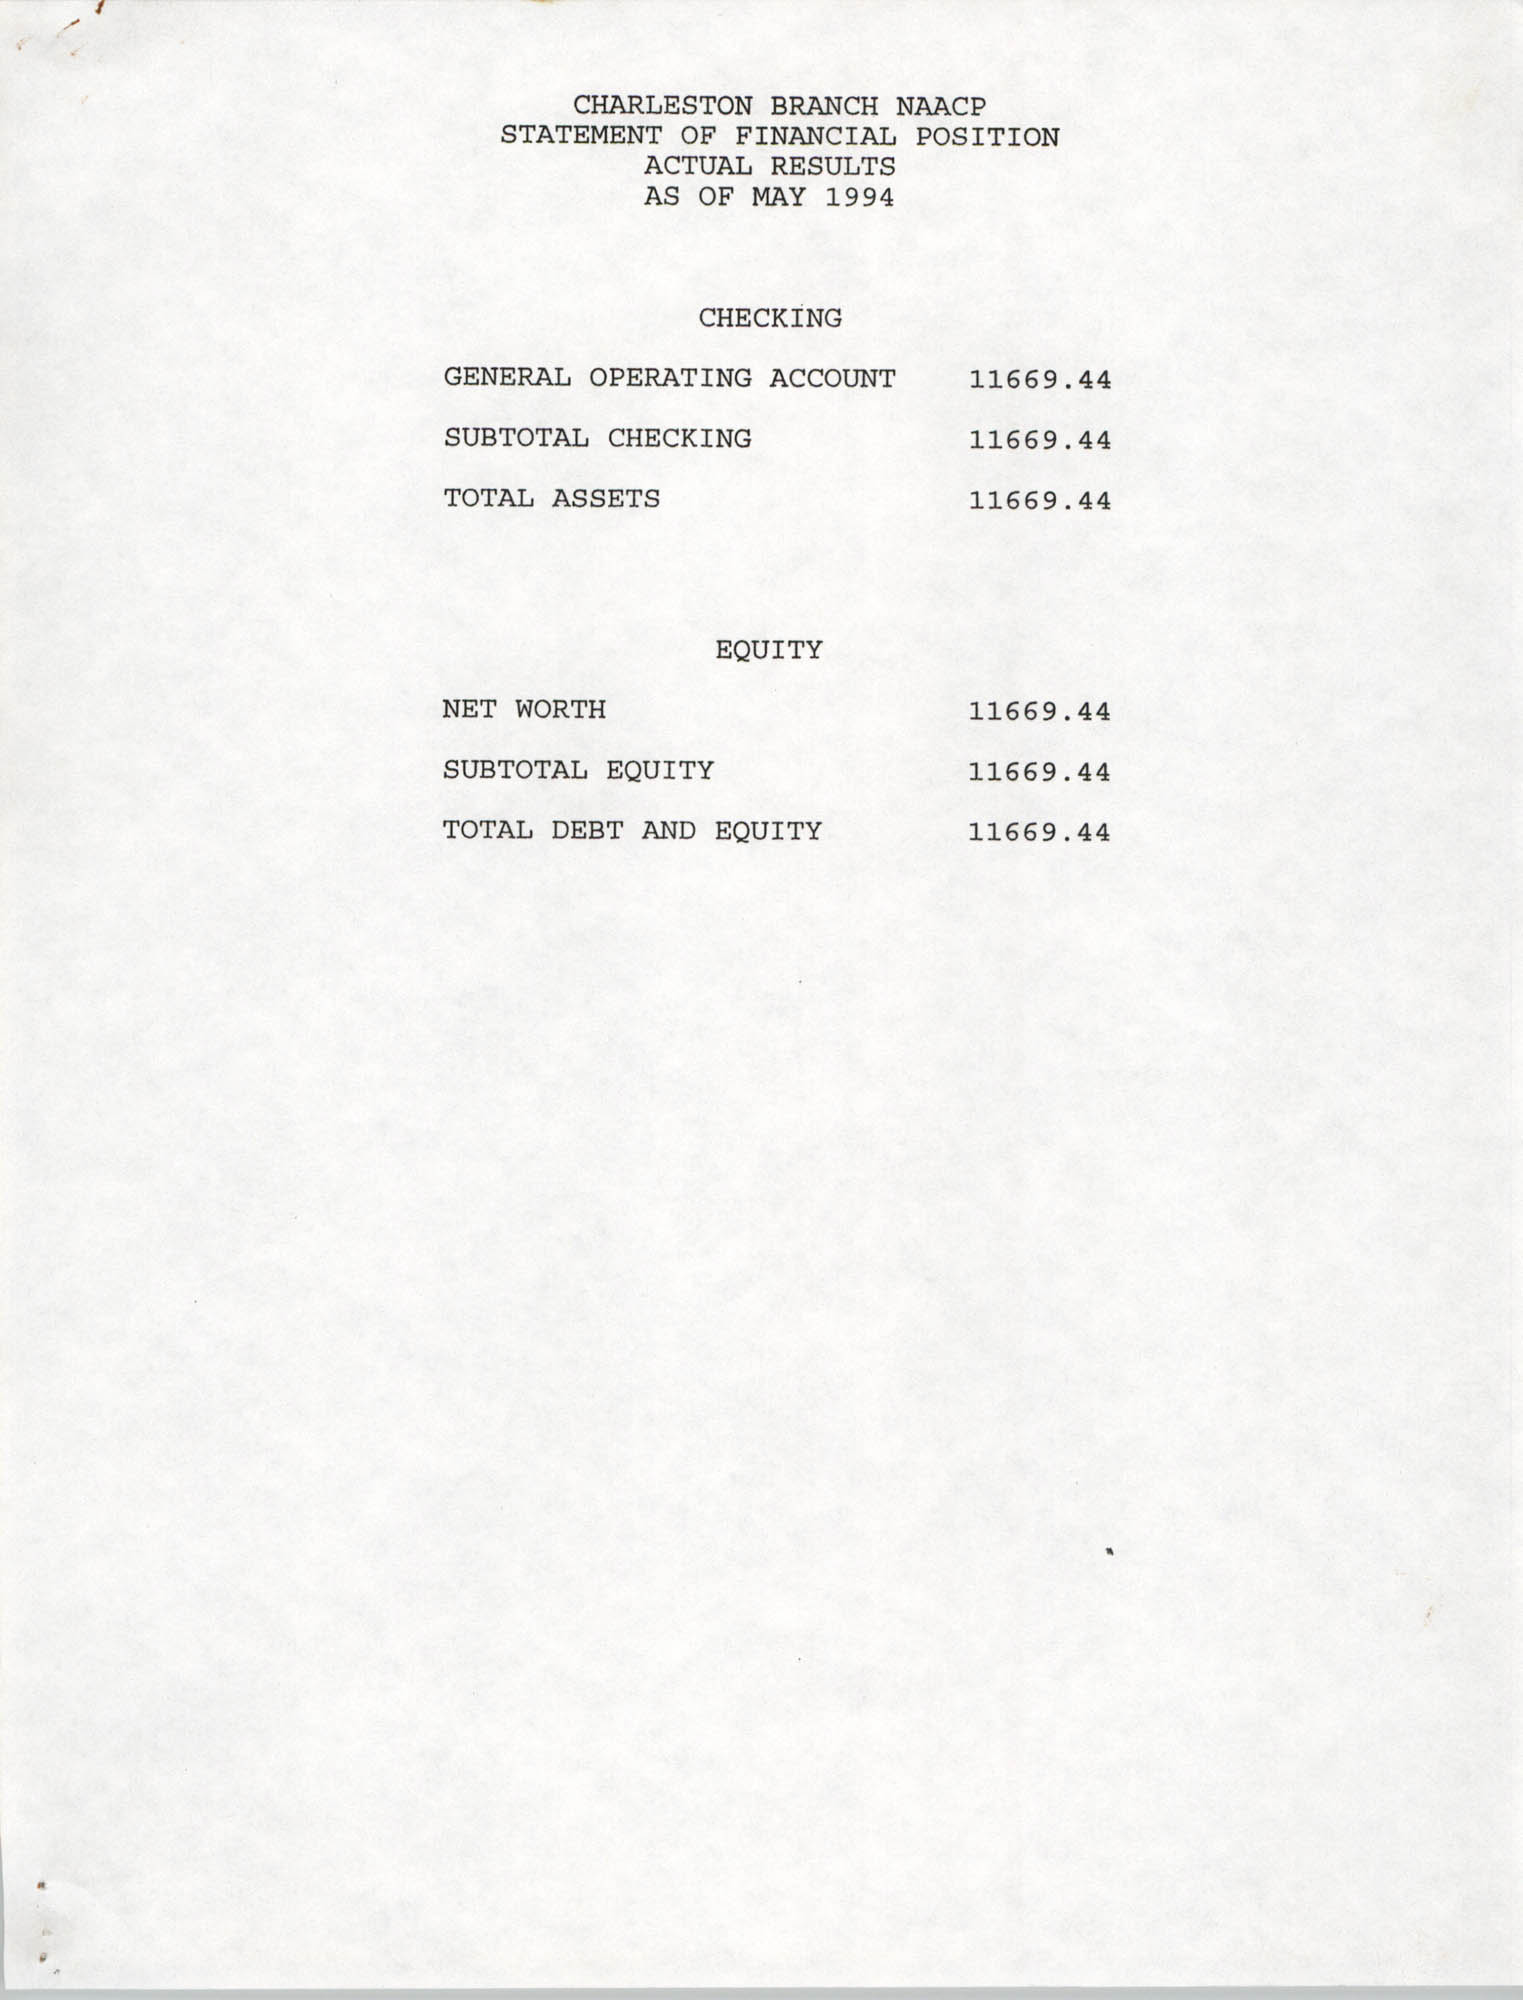 Charleston Branch of the NAACP Statement of Financial Position, May 1994